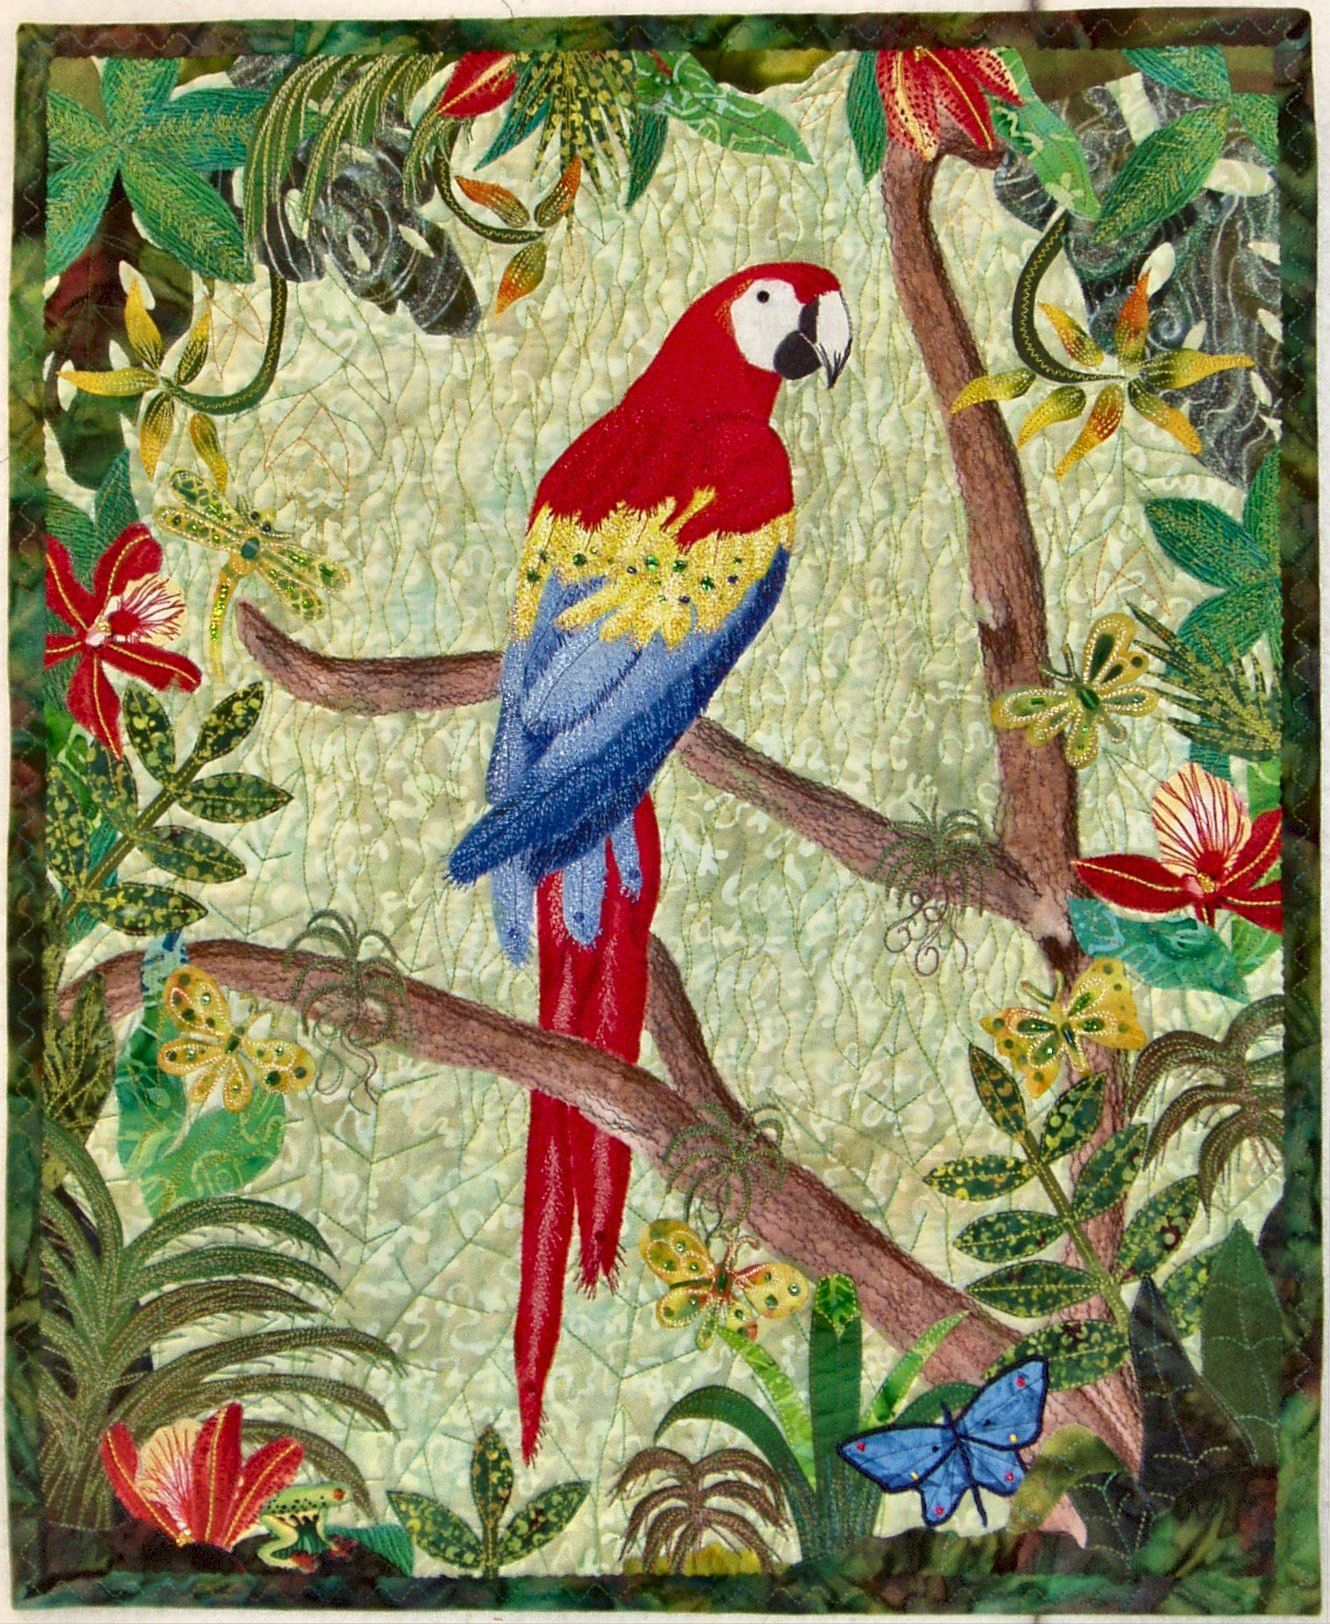 "Scarlet Macaw in a Tropical Forest, 18"" x 22"", by Georgia Heller (2005)"